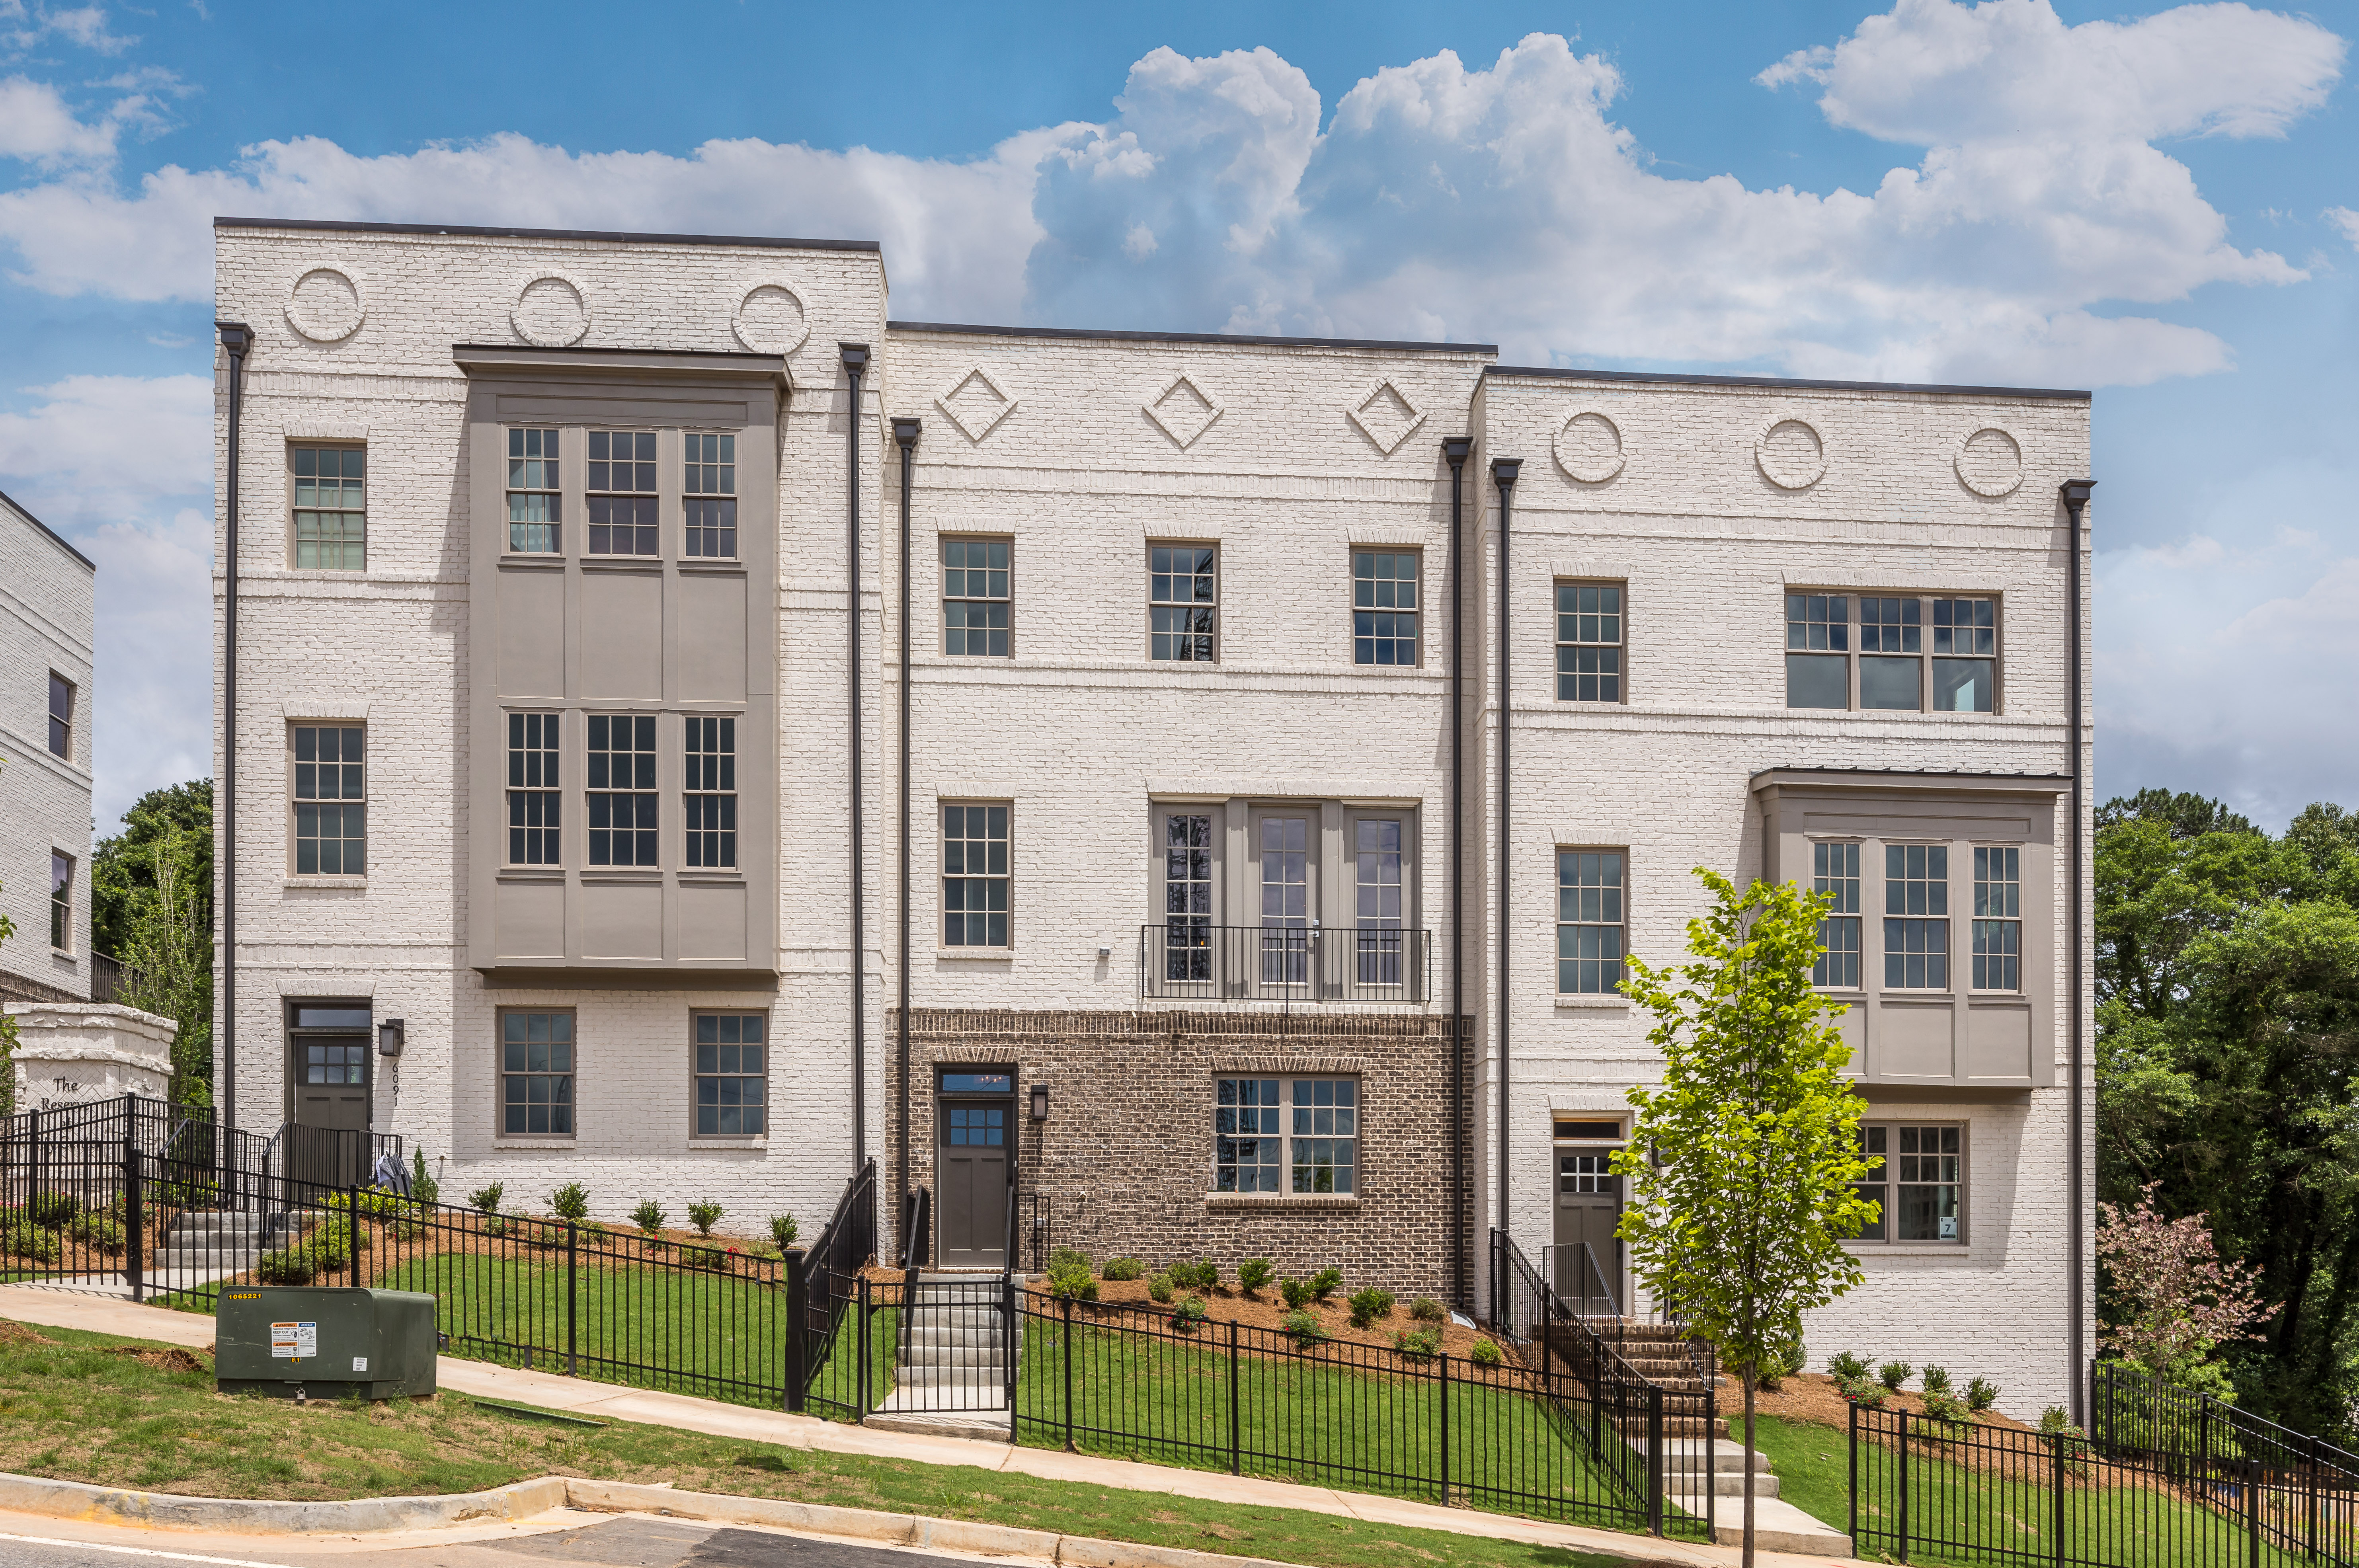 Summer move-in special is happening at Sandy Springs townhomes